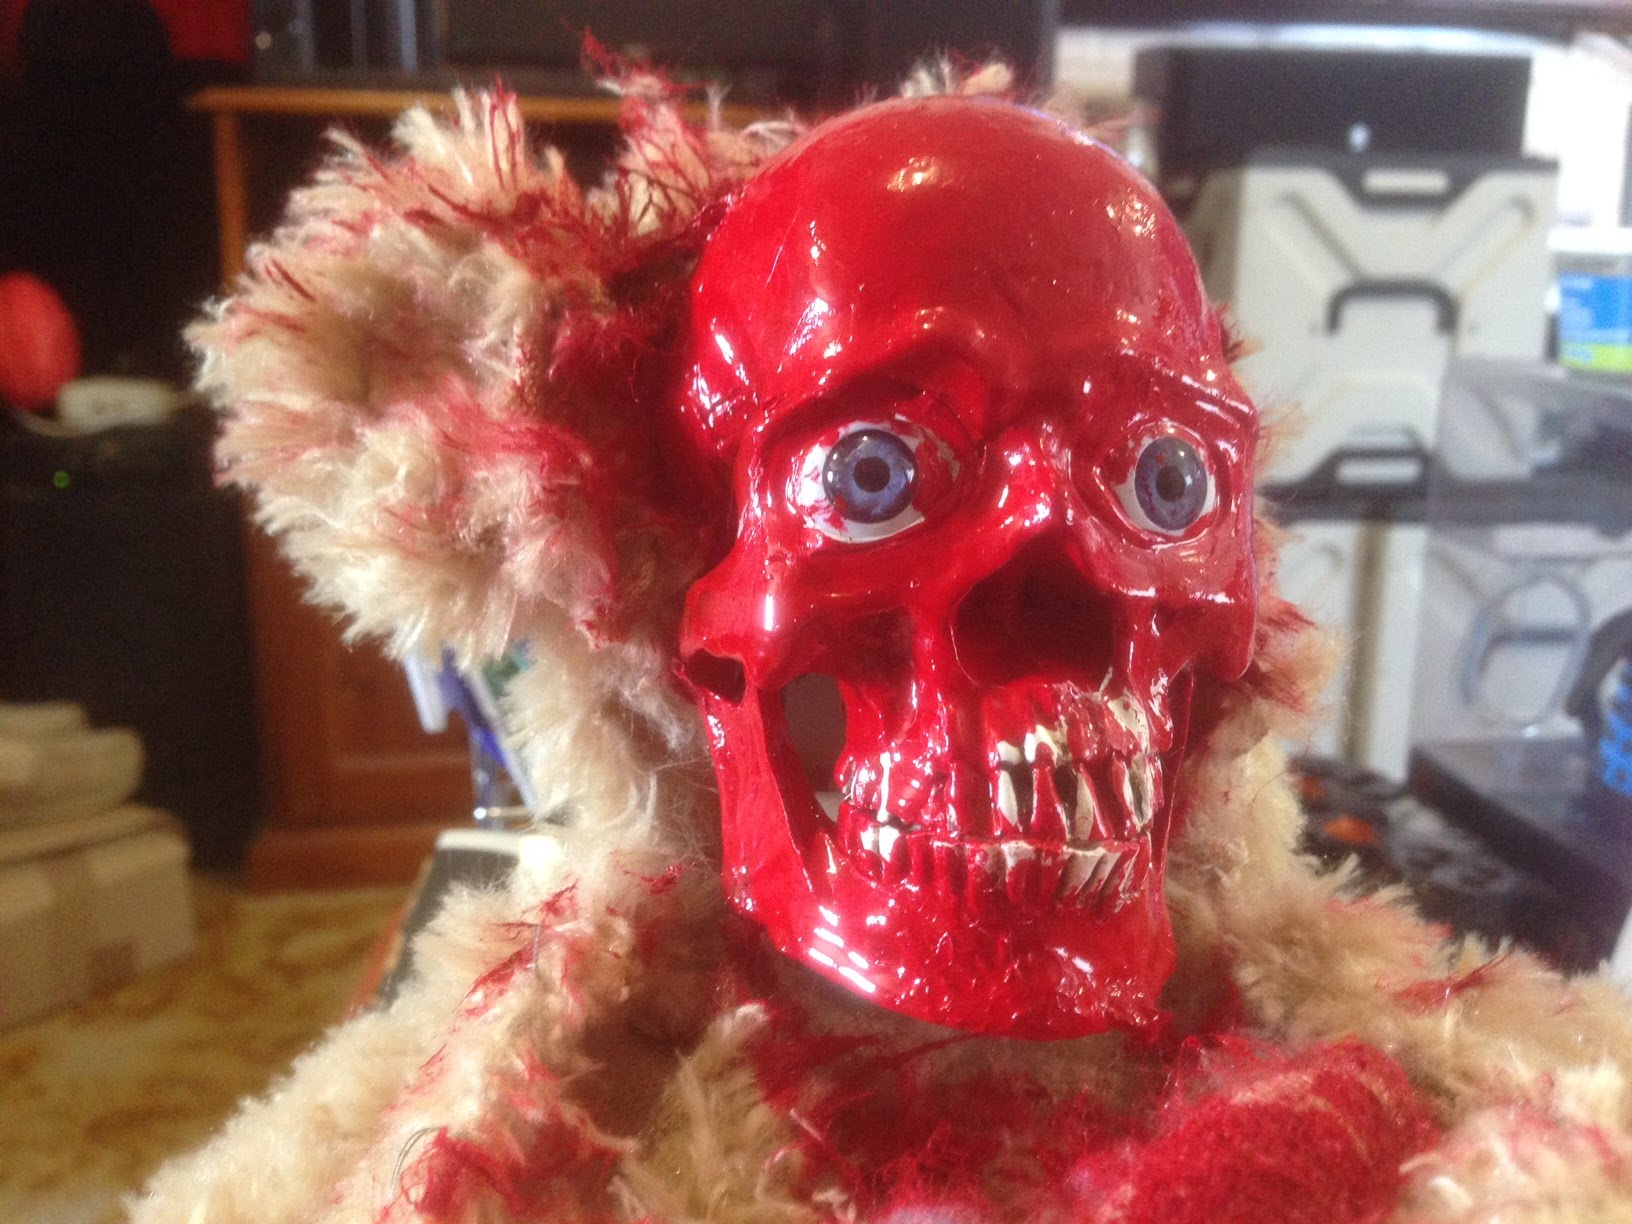 A Cute Teddy Bear Rips Its Face Off While Playing a Horrifying Game of Peek-A-Boo